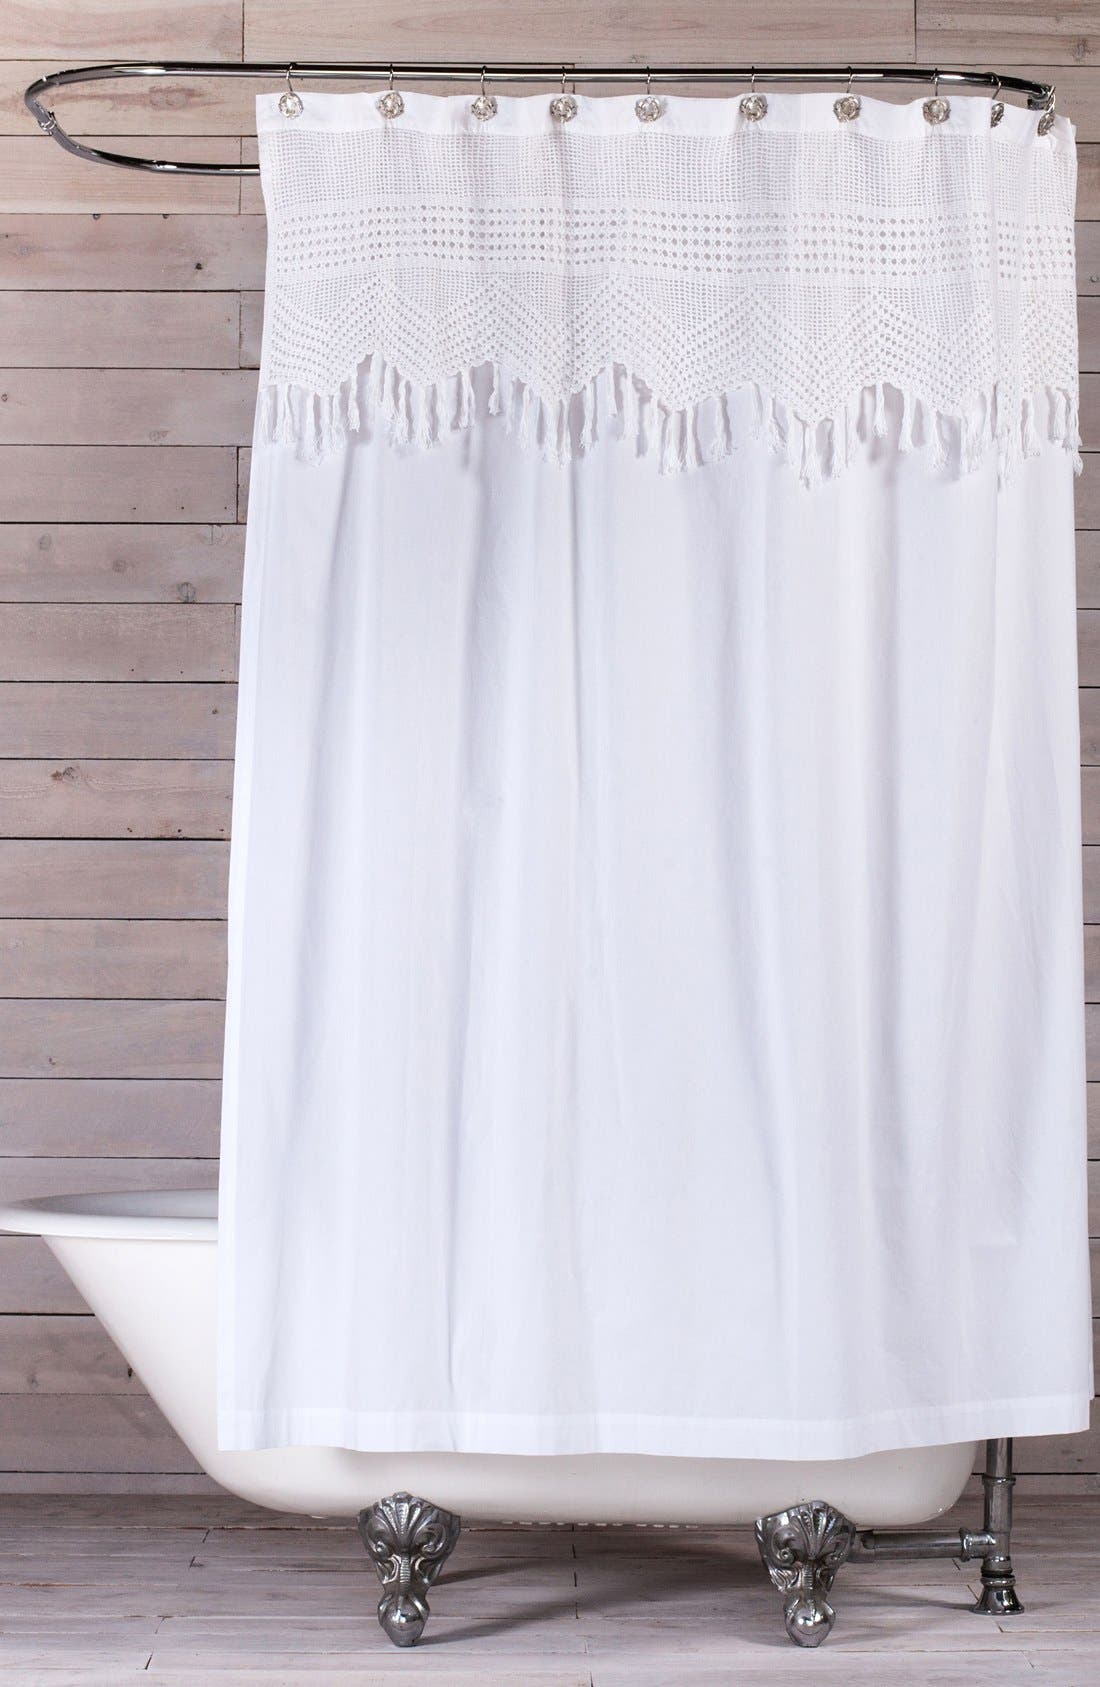 Pom Pom at Home Vintage Crochet Shower Curtain